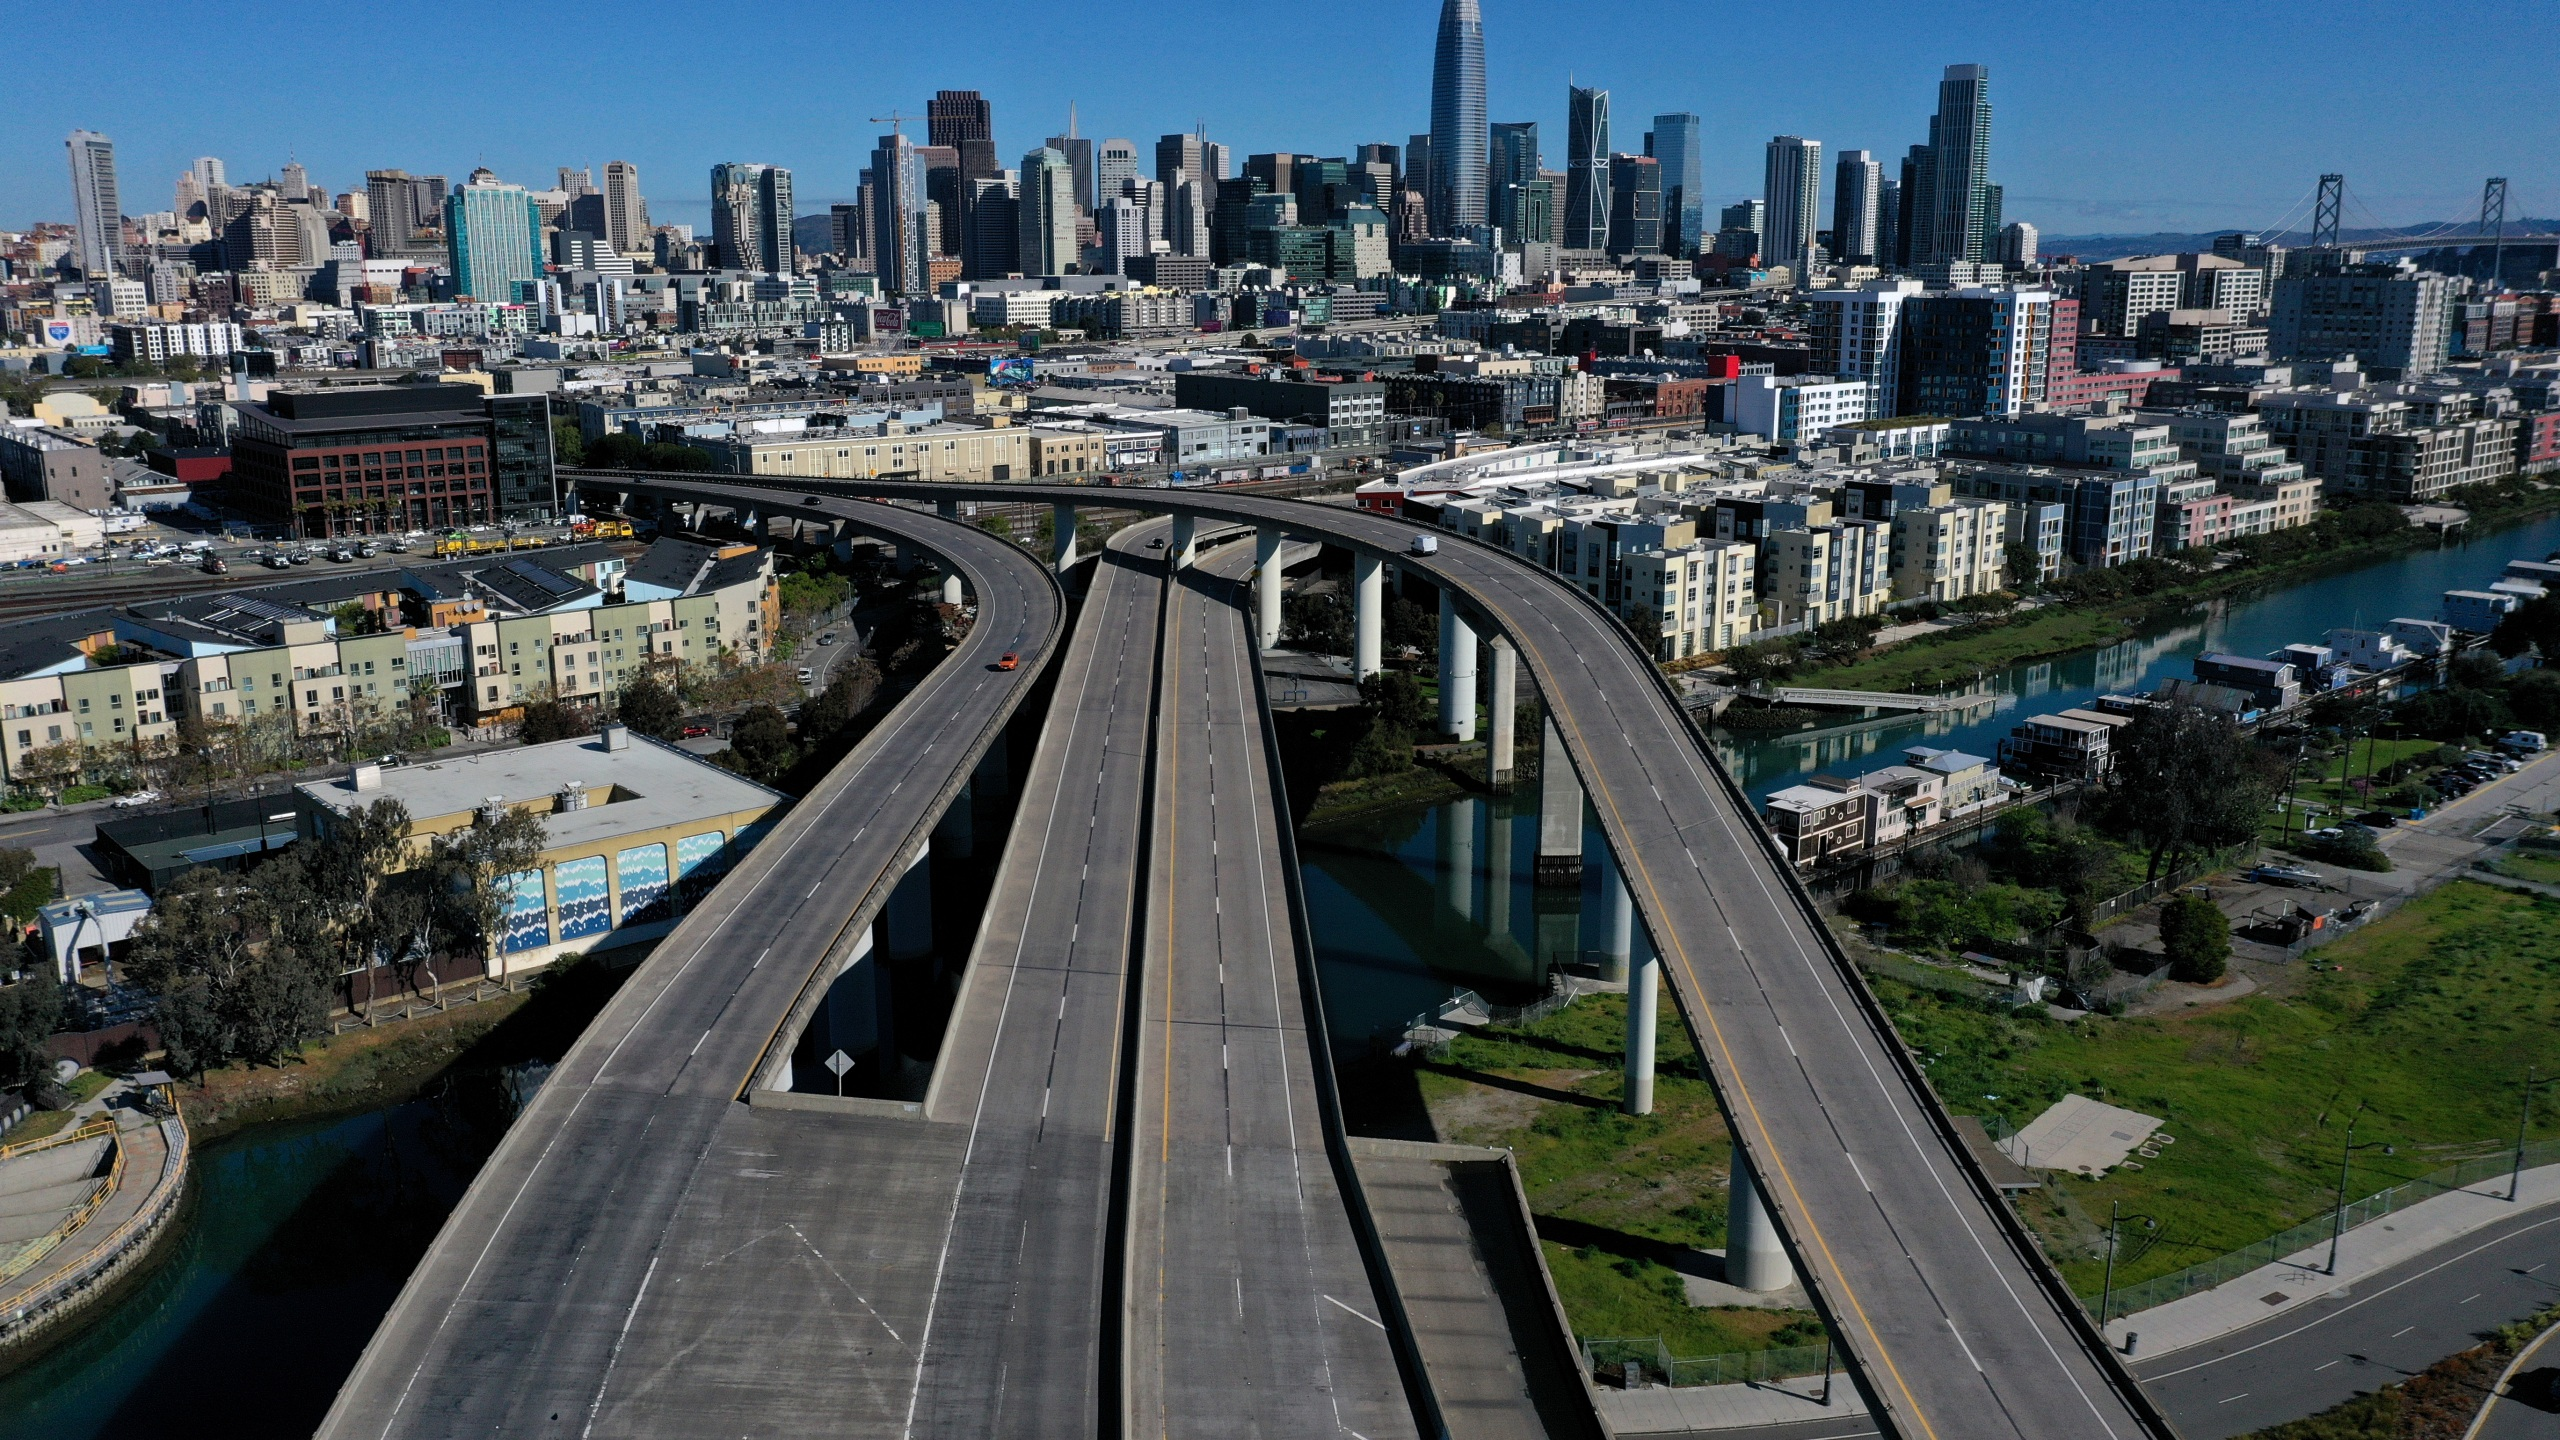 Interstate 280 is seen nearly empty on March 26, 2020, near San Francisco, California. (Justin Sullivan/Getty Images)